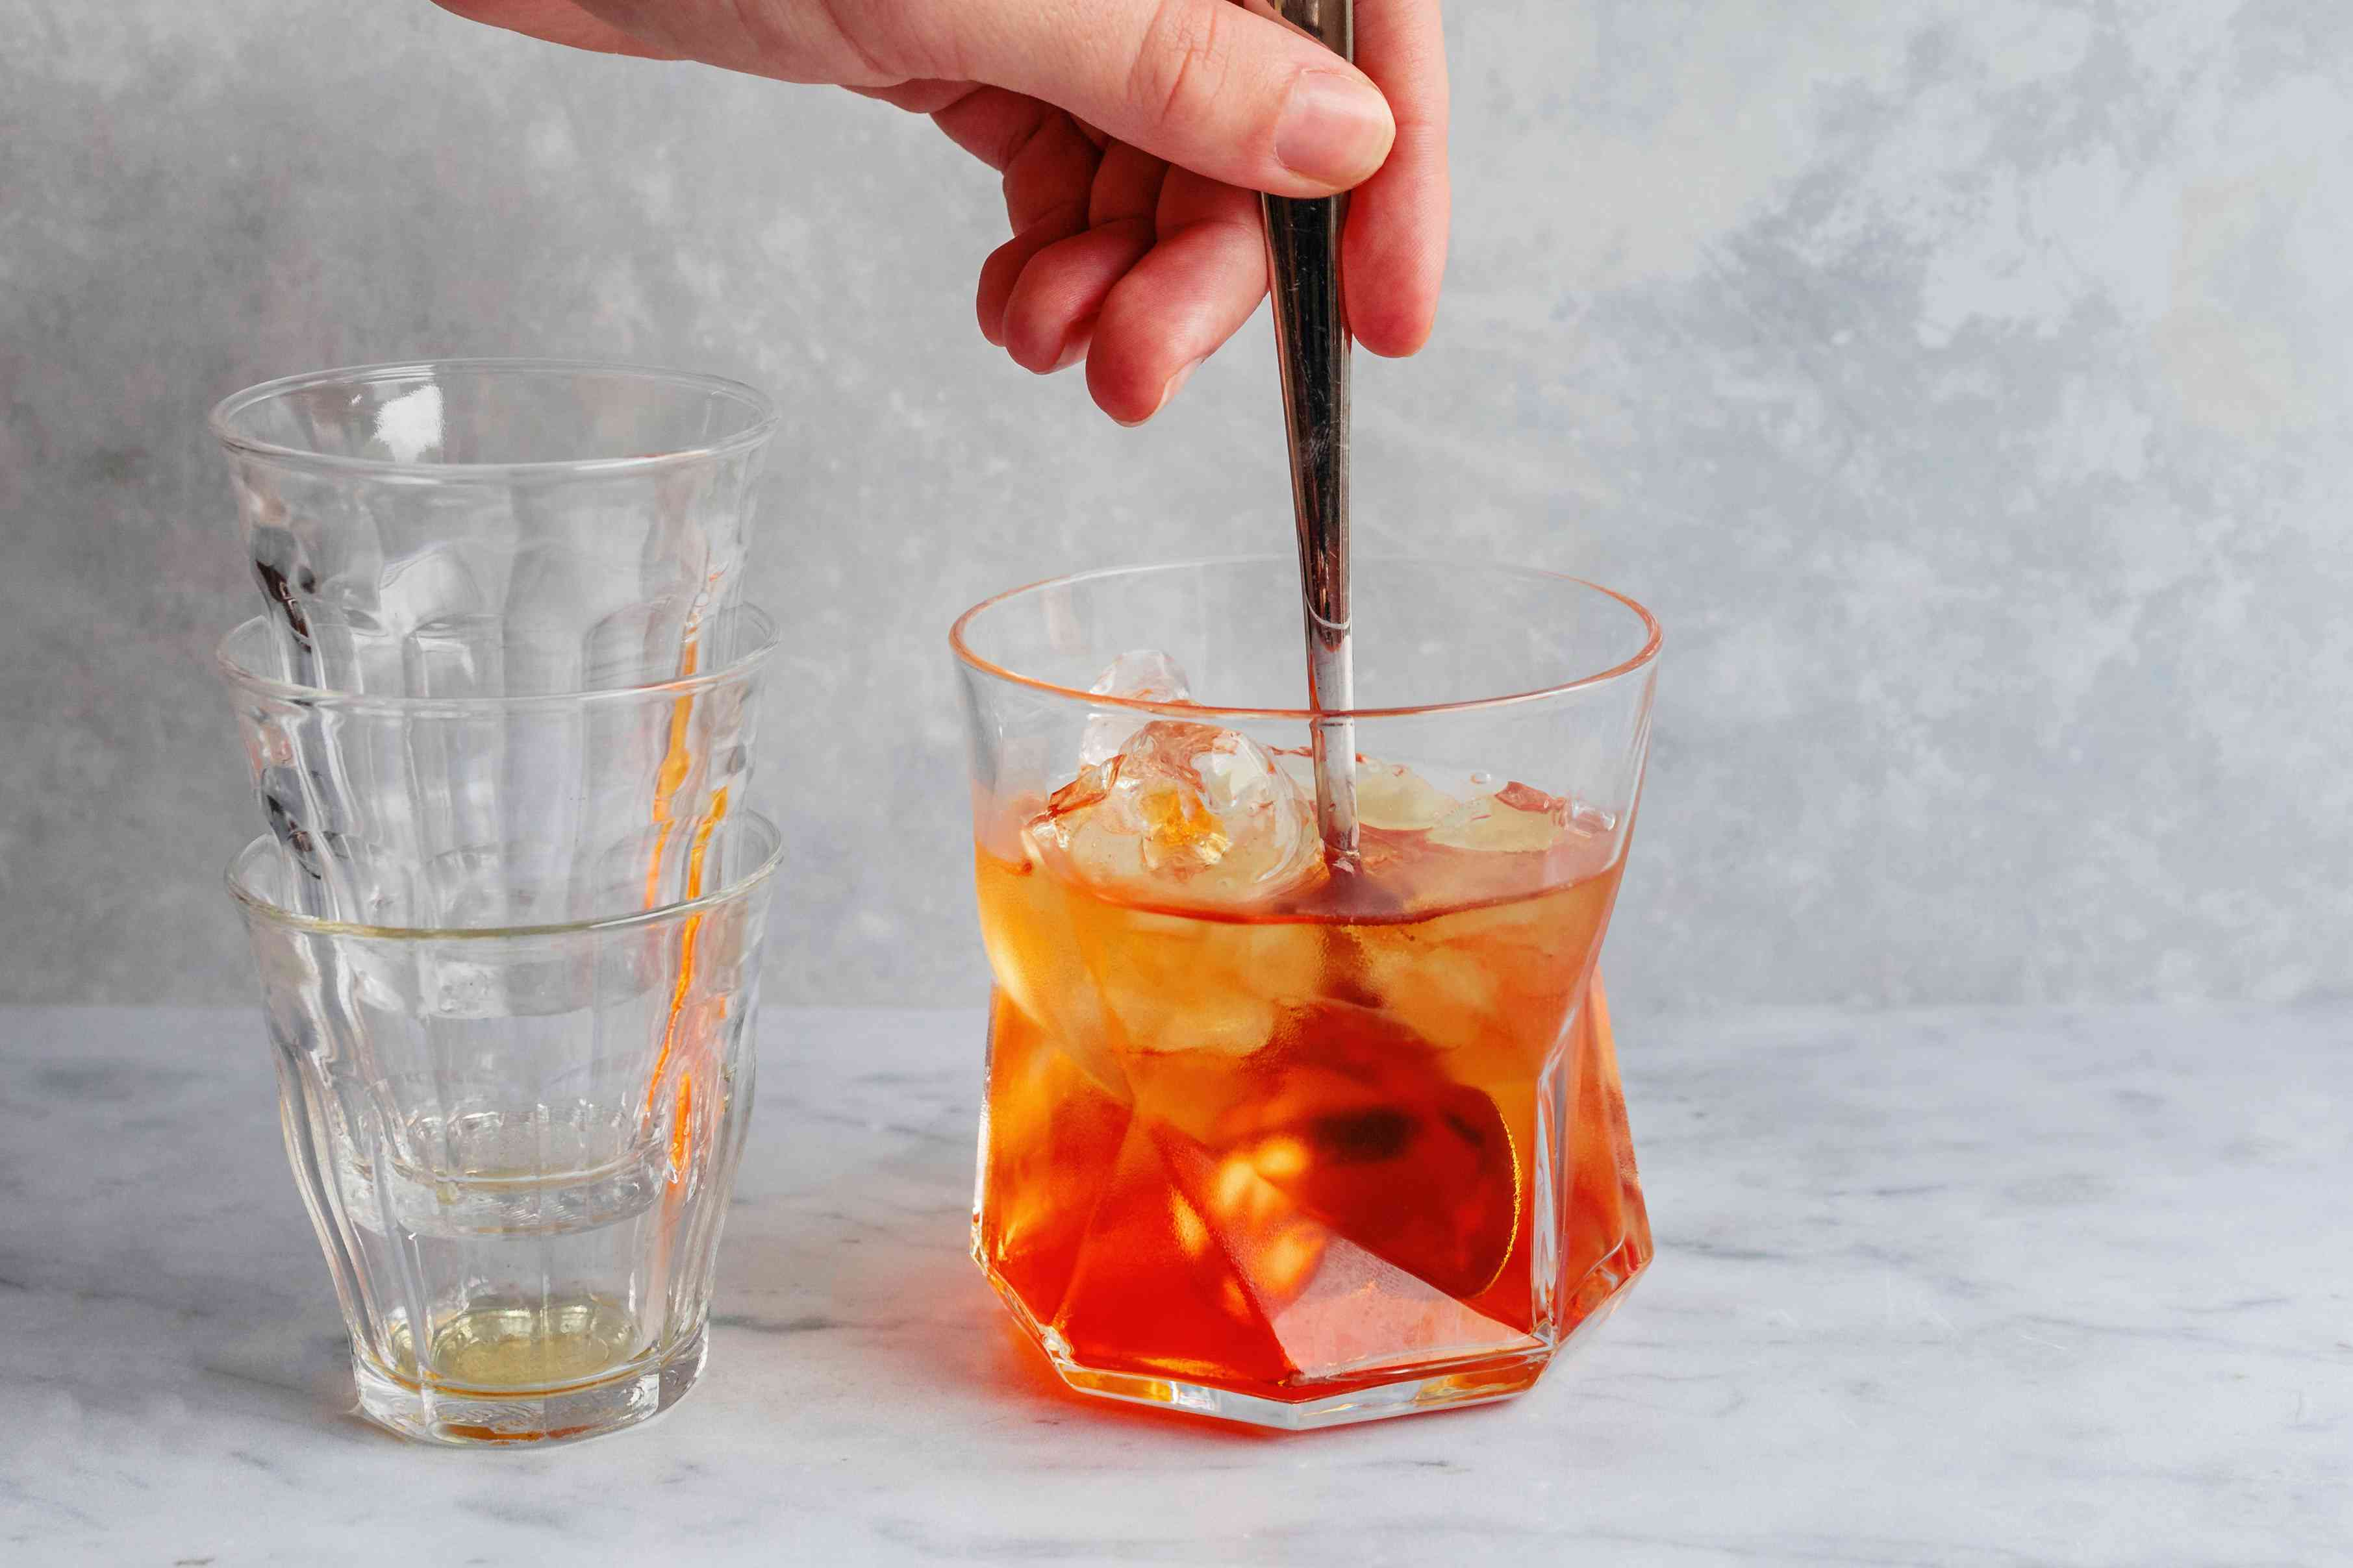 Stir Negroni cocktail in a glass